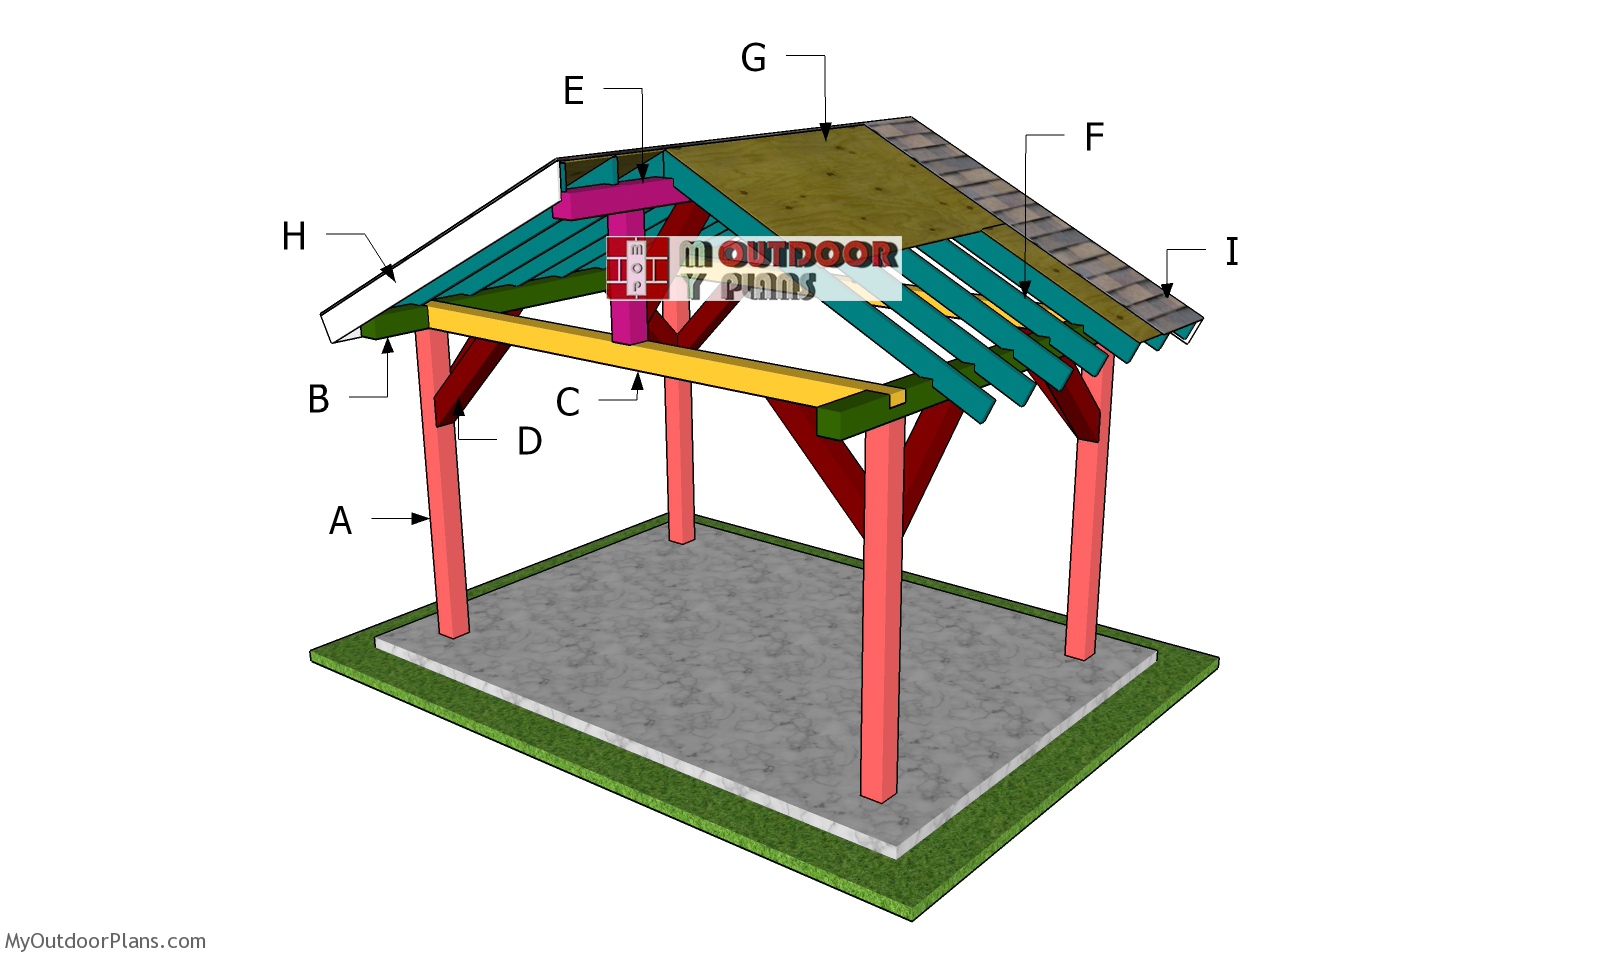 12x8 Gable Pavilion Roof Plans